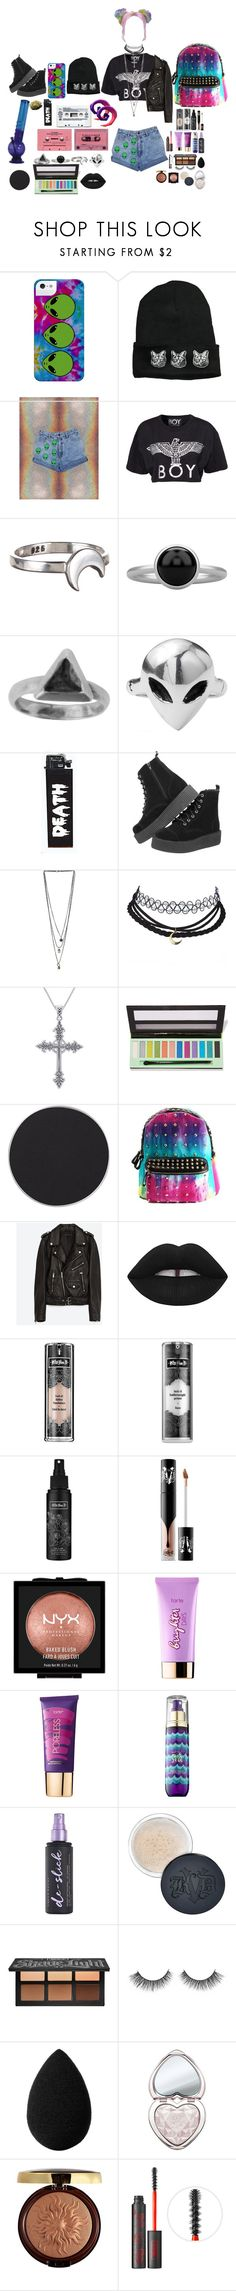 """""""Give Me Novacaine~Green Day"""" by headbangingunicorn ❤ liked on Polyvore featuring Moon River Collective, CASSETTE, BOY London, Veras, Grace + Scarper, Pieces, Zoemou, Disturbia, T.U.K. and Miss Selfridge"""